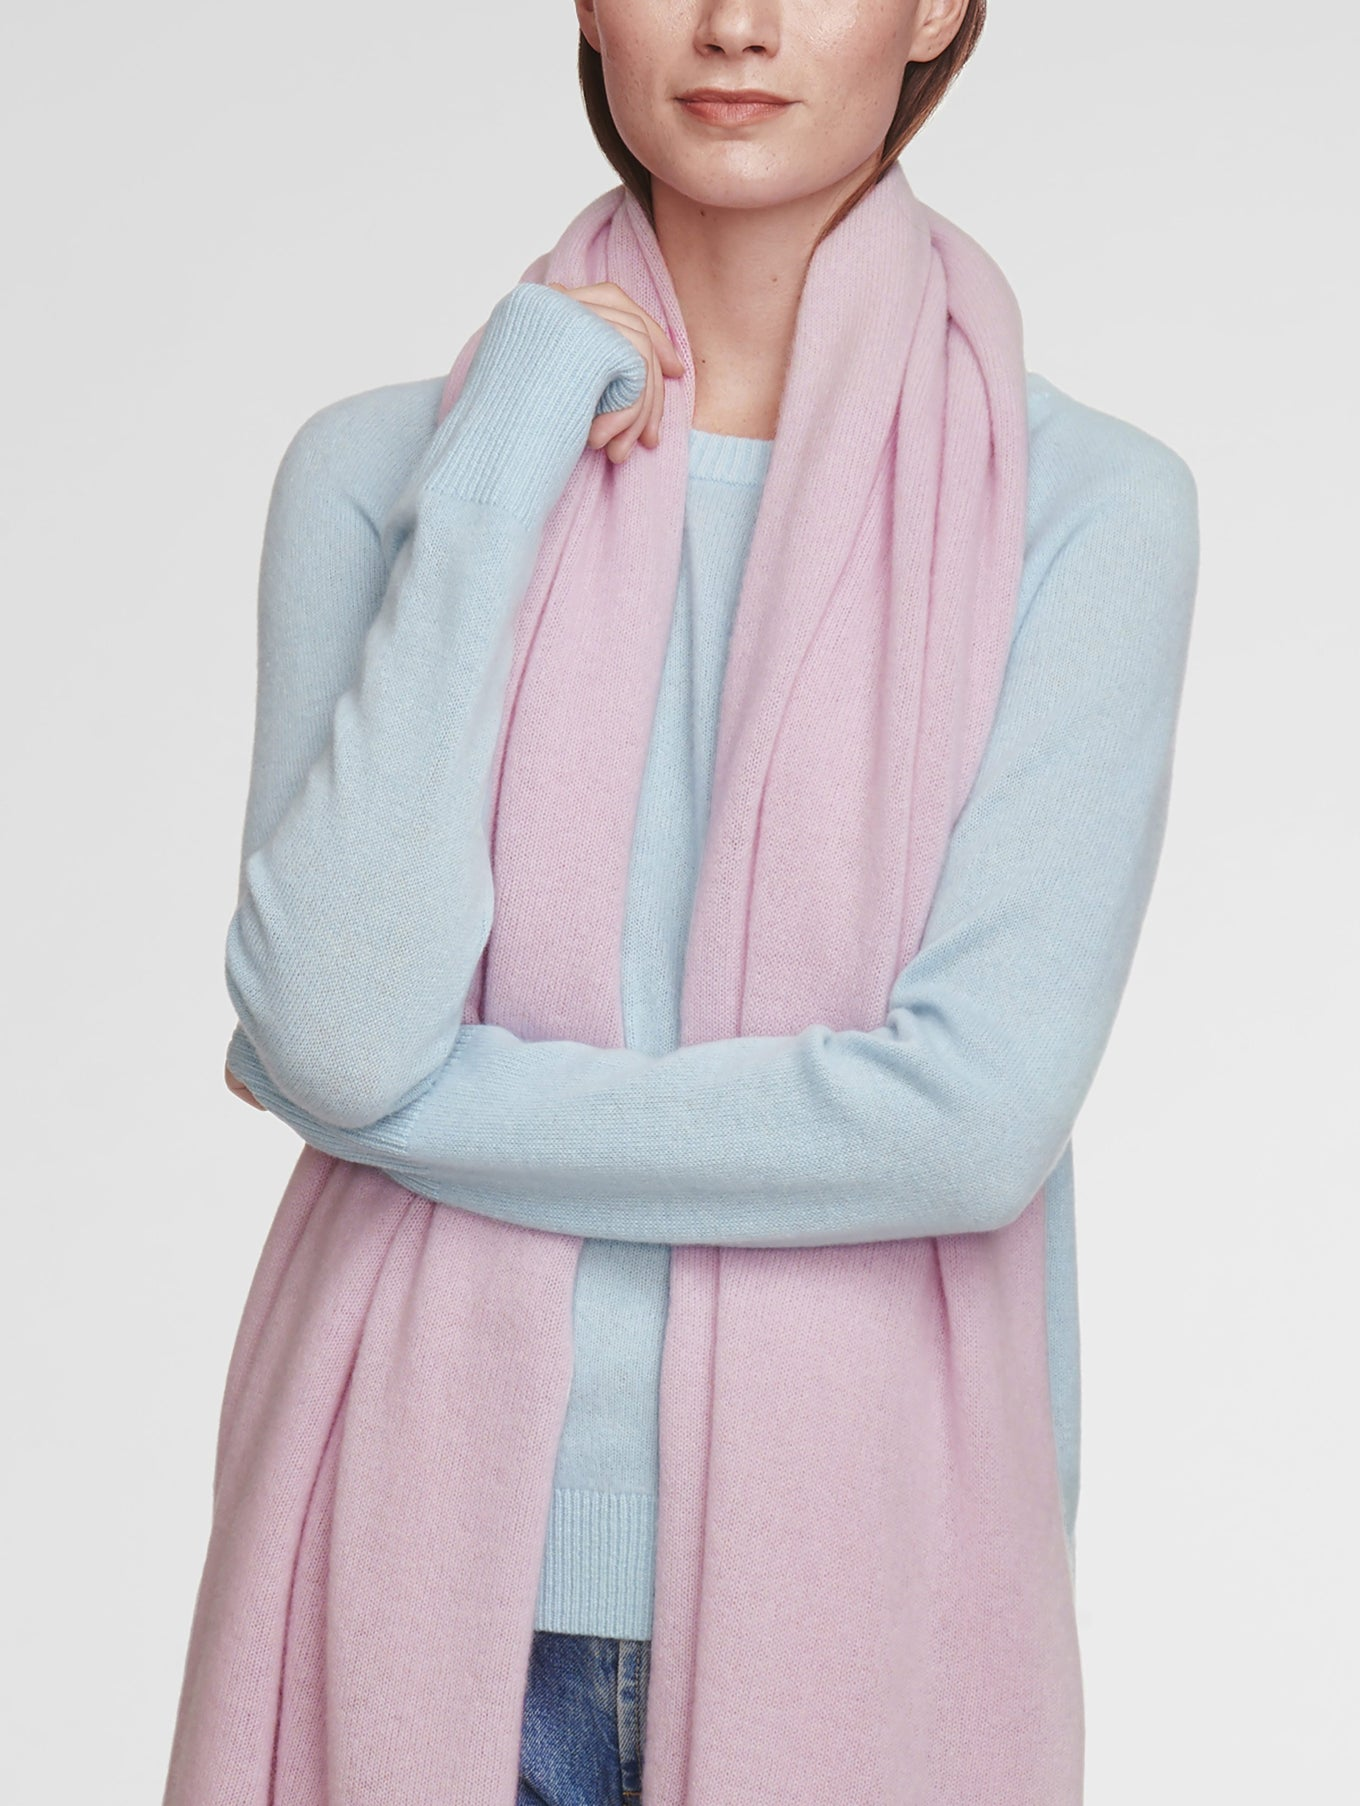 The Women's Alzheimer's Movement Cashmere Travel Wrap